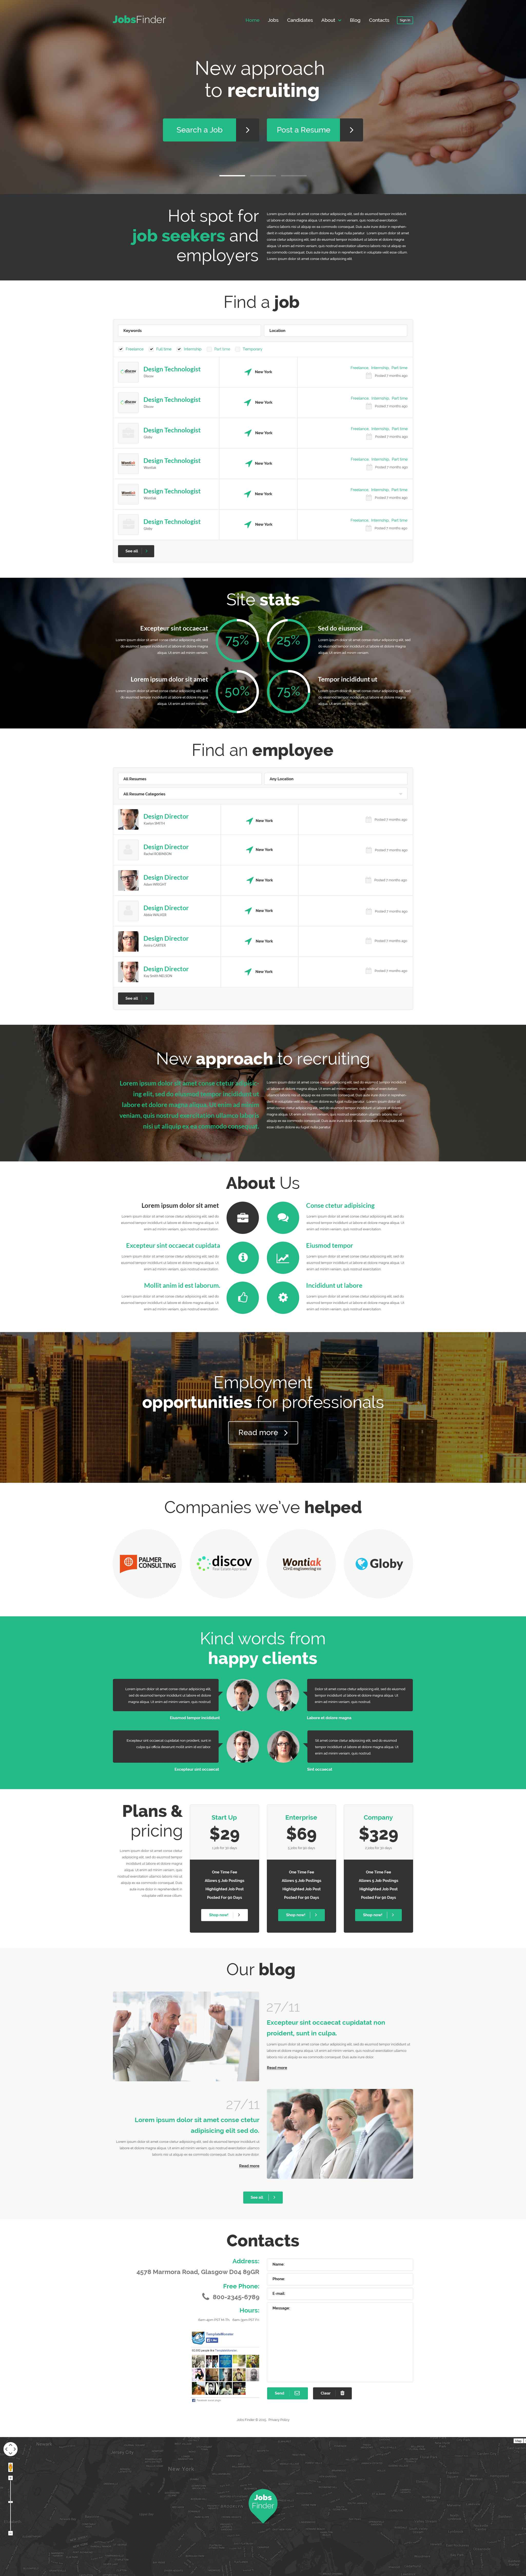 Jobs Finder PSD Template - screenshot